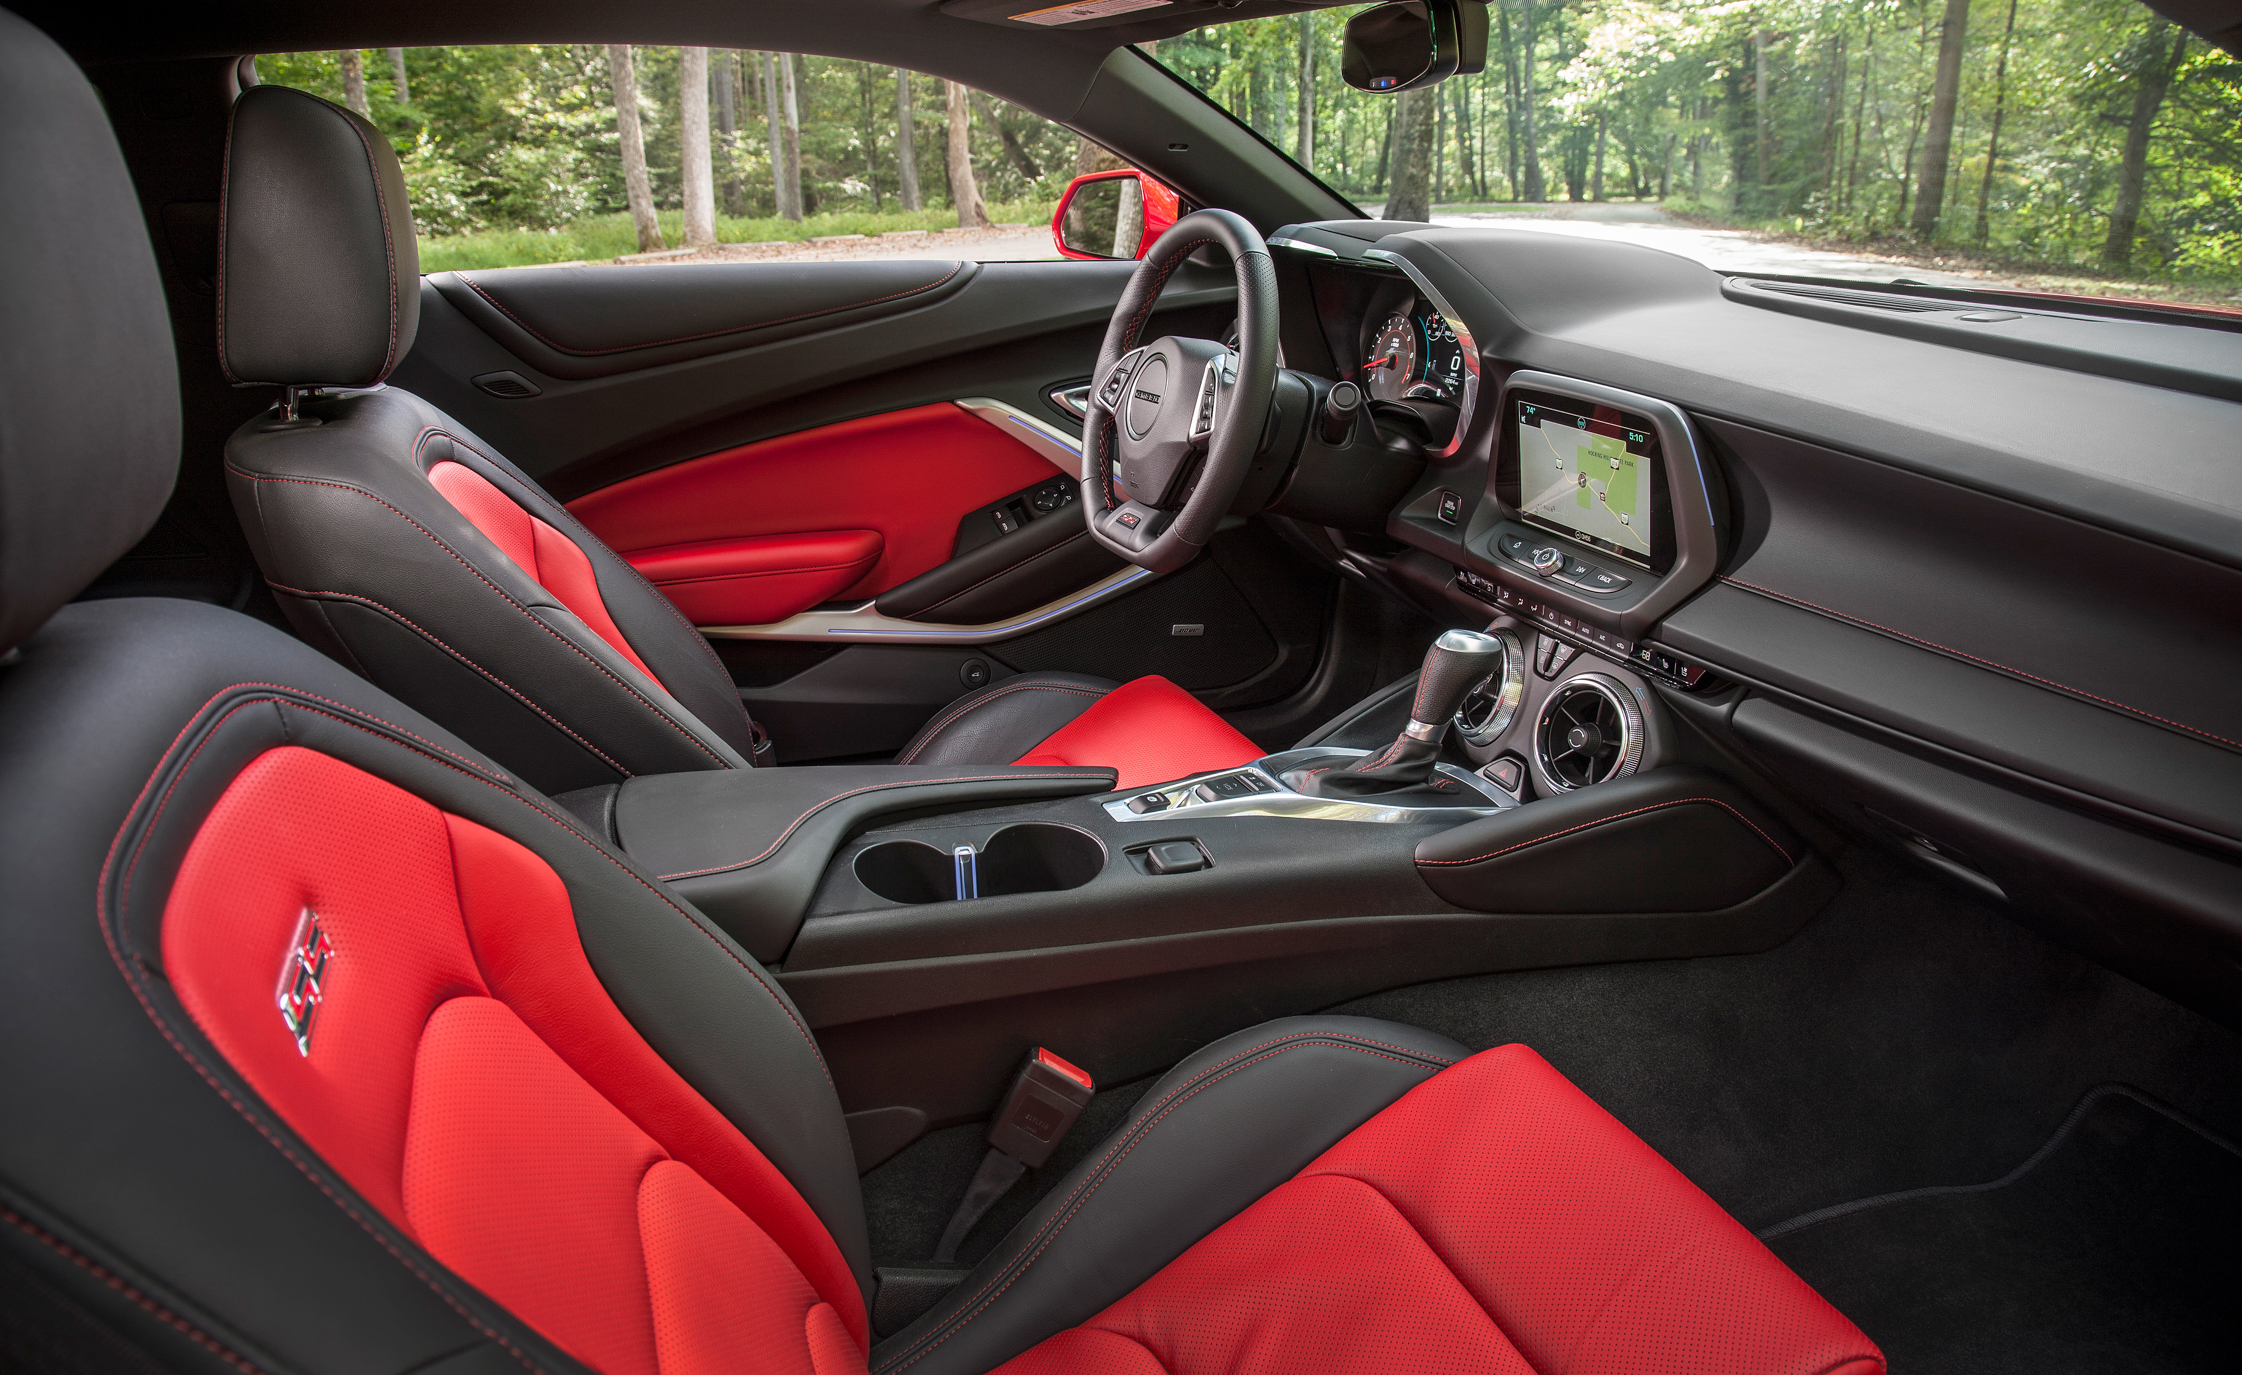 2016 chevrolet ss interior - photo #3